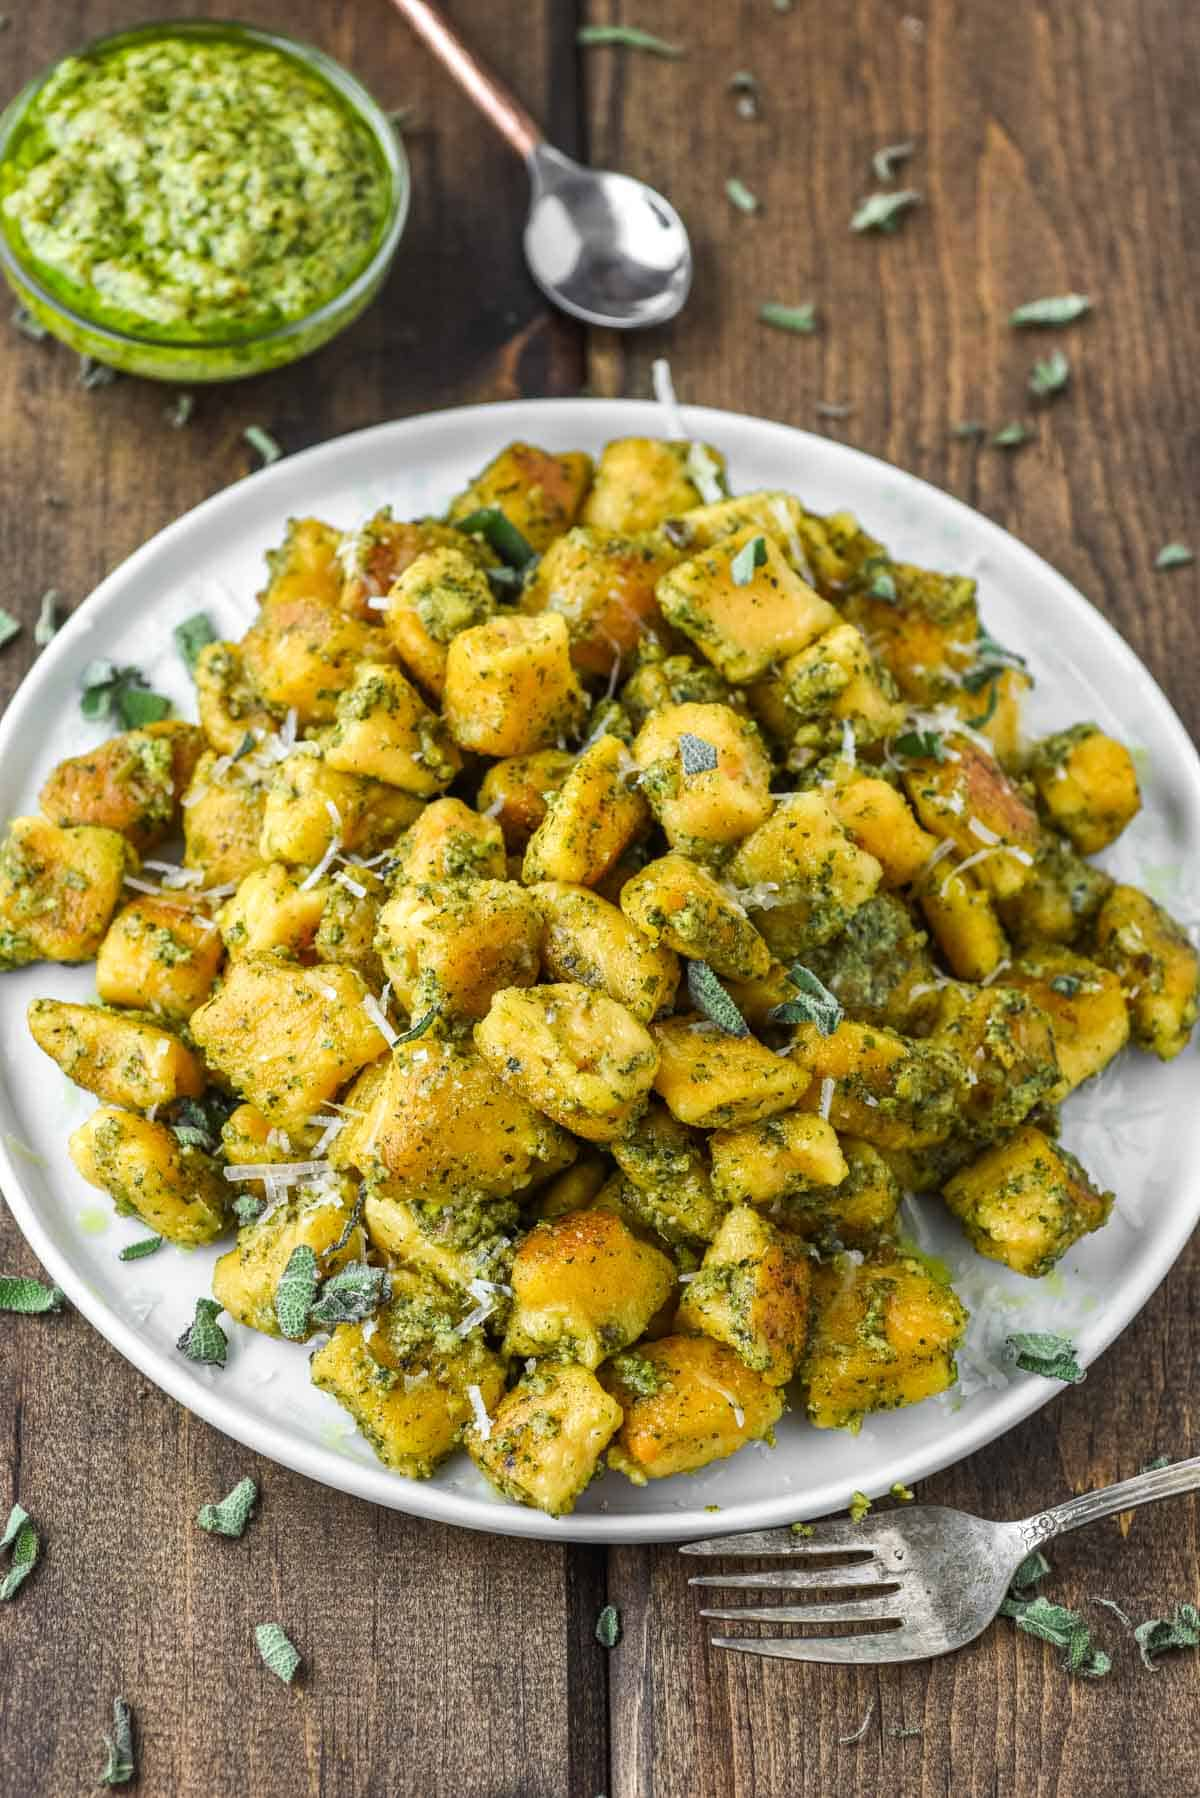 gnocchi made with sweet potatoes on white plate